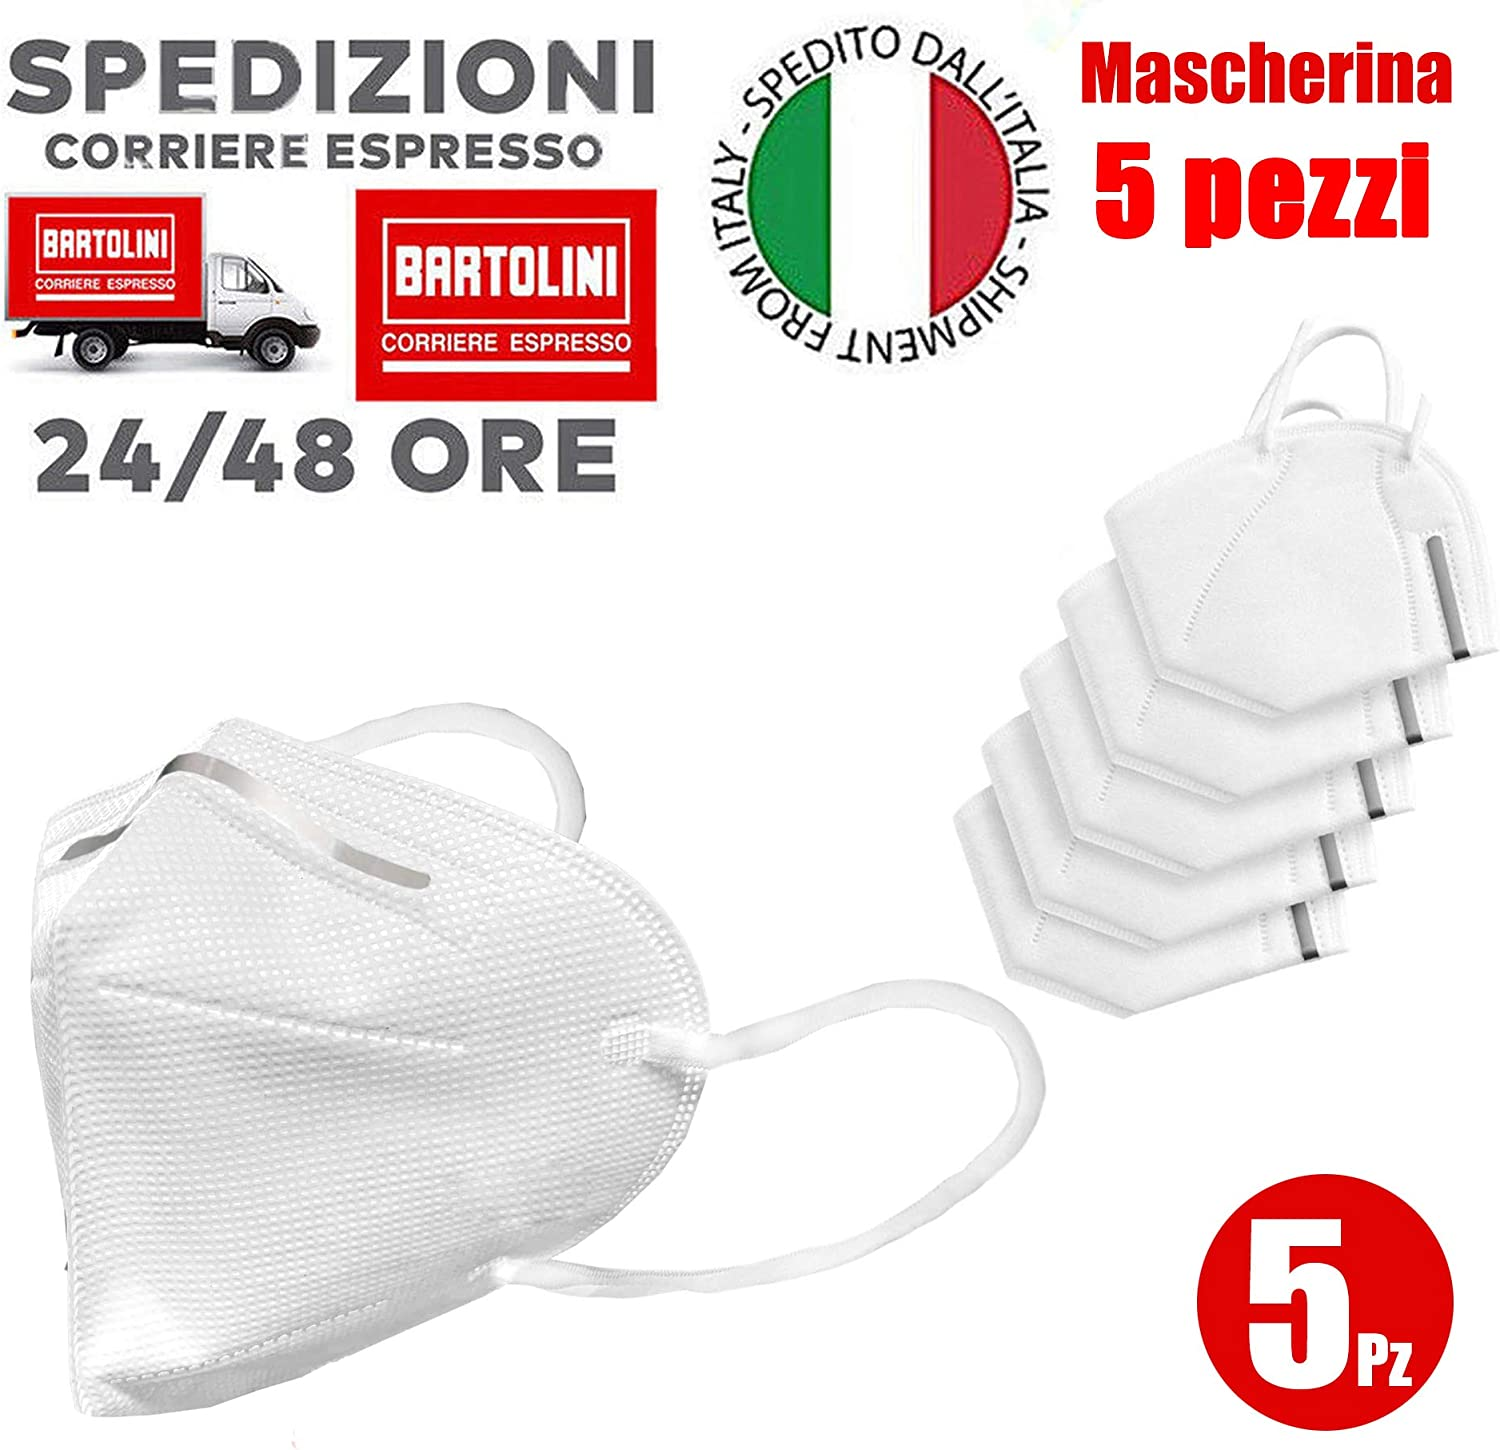 Soft Protective Masks produced in Italy